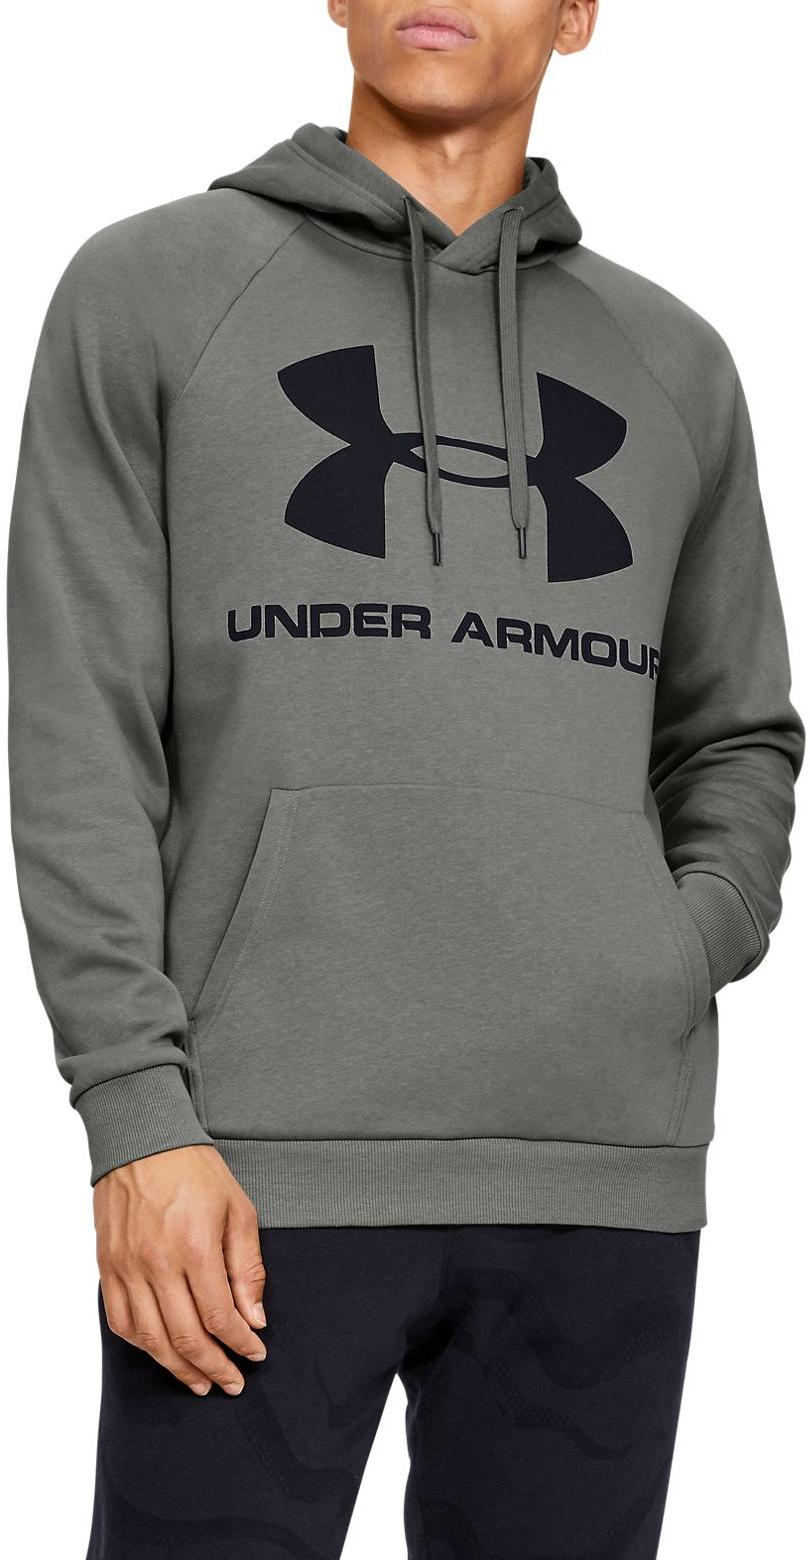 Mikina s kapucňou Under Armour RIVAL FLEECE SPORTSTYLE LOGO HOODIE